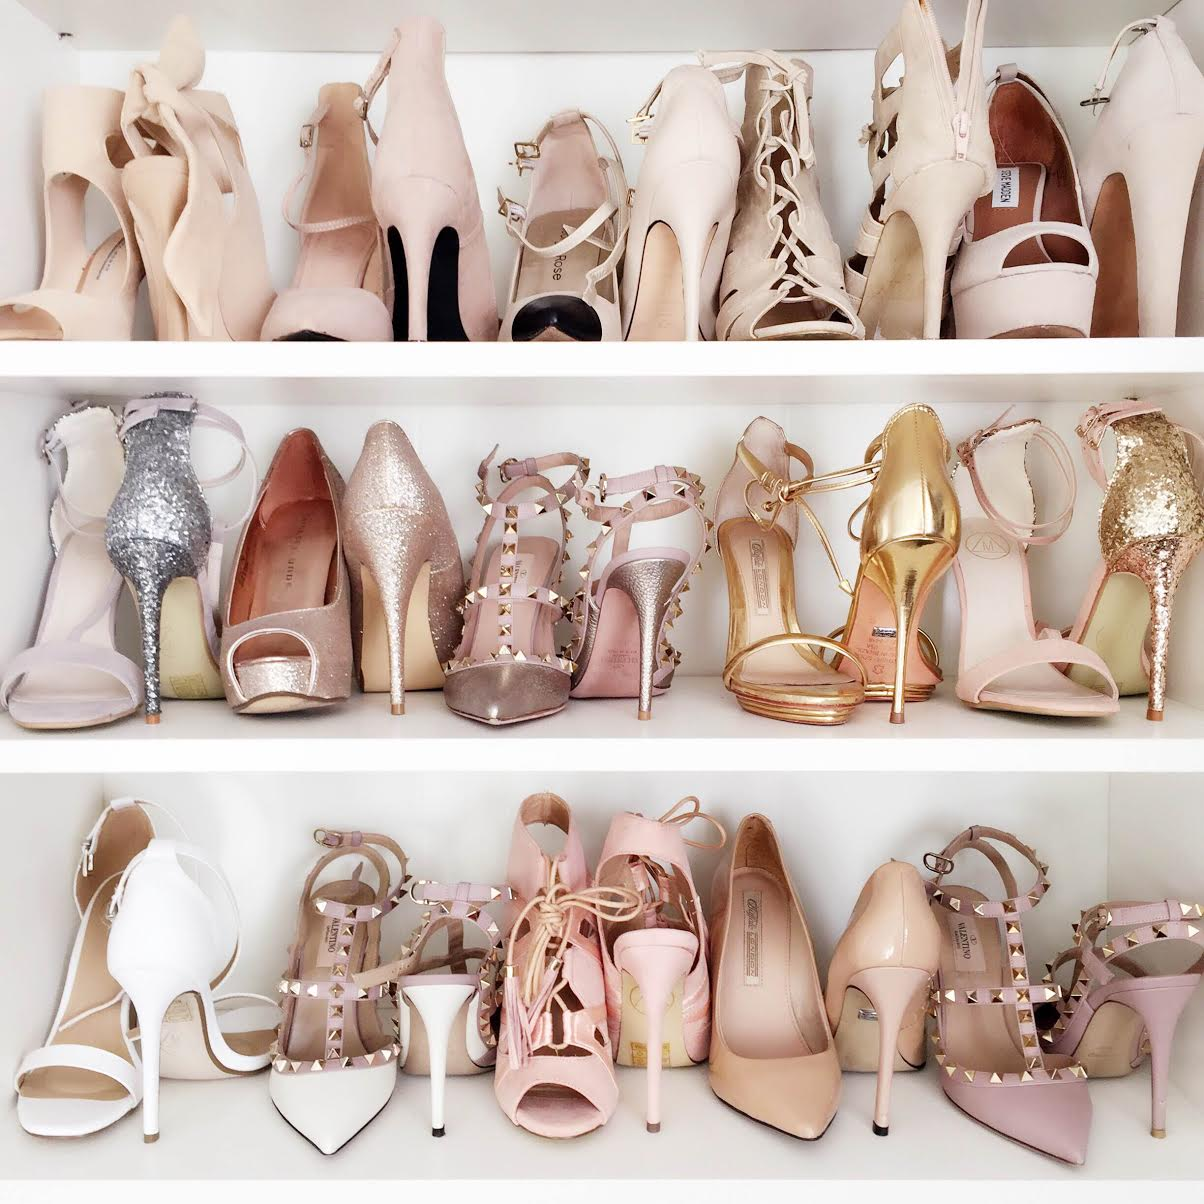 fashionhippieloves-shoe-closet-nude-pastels